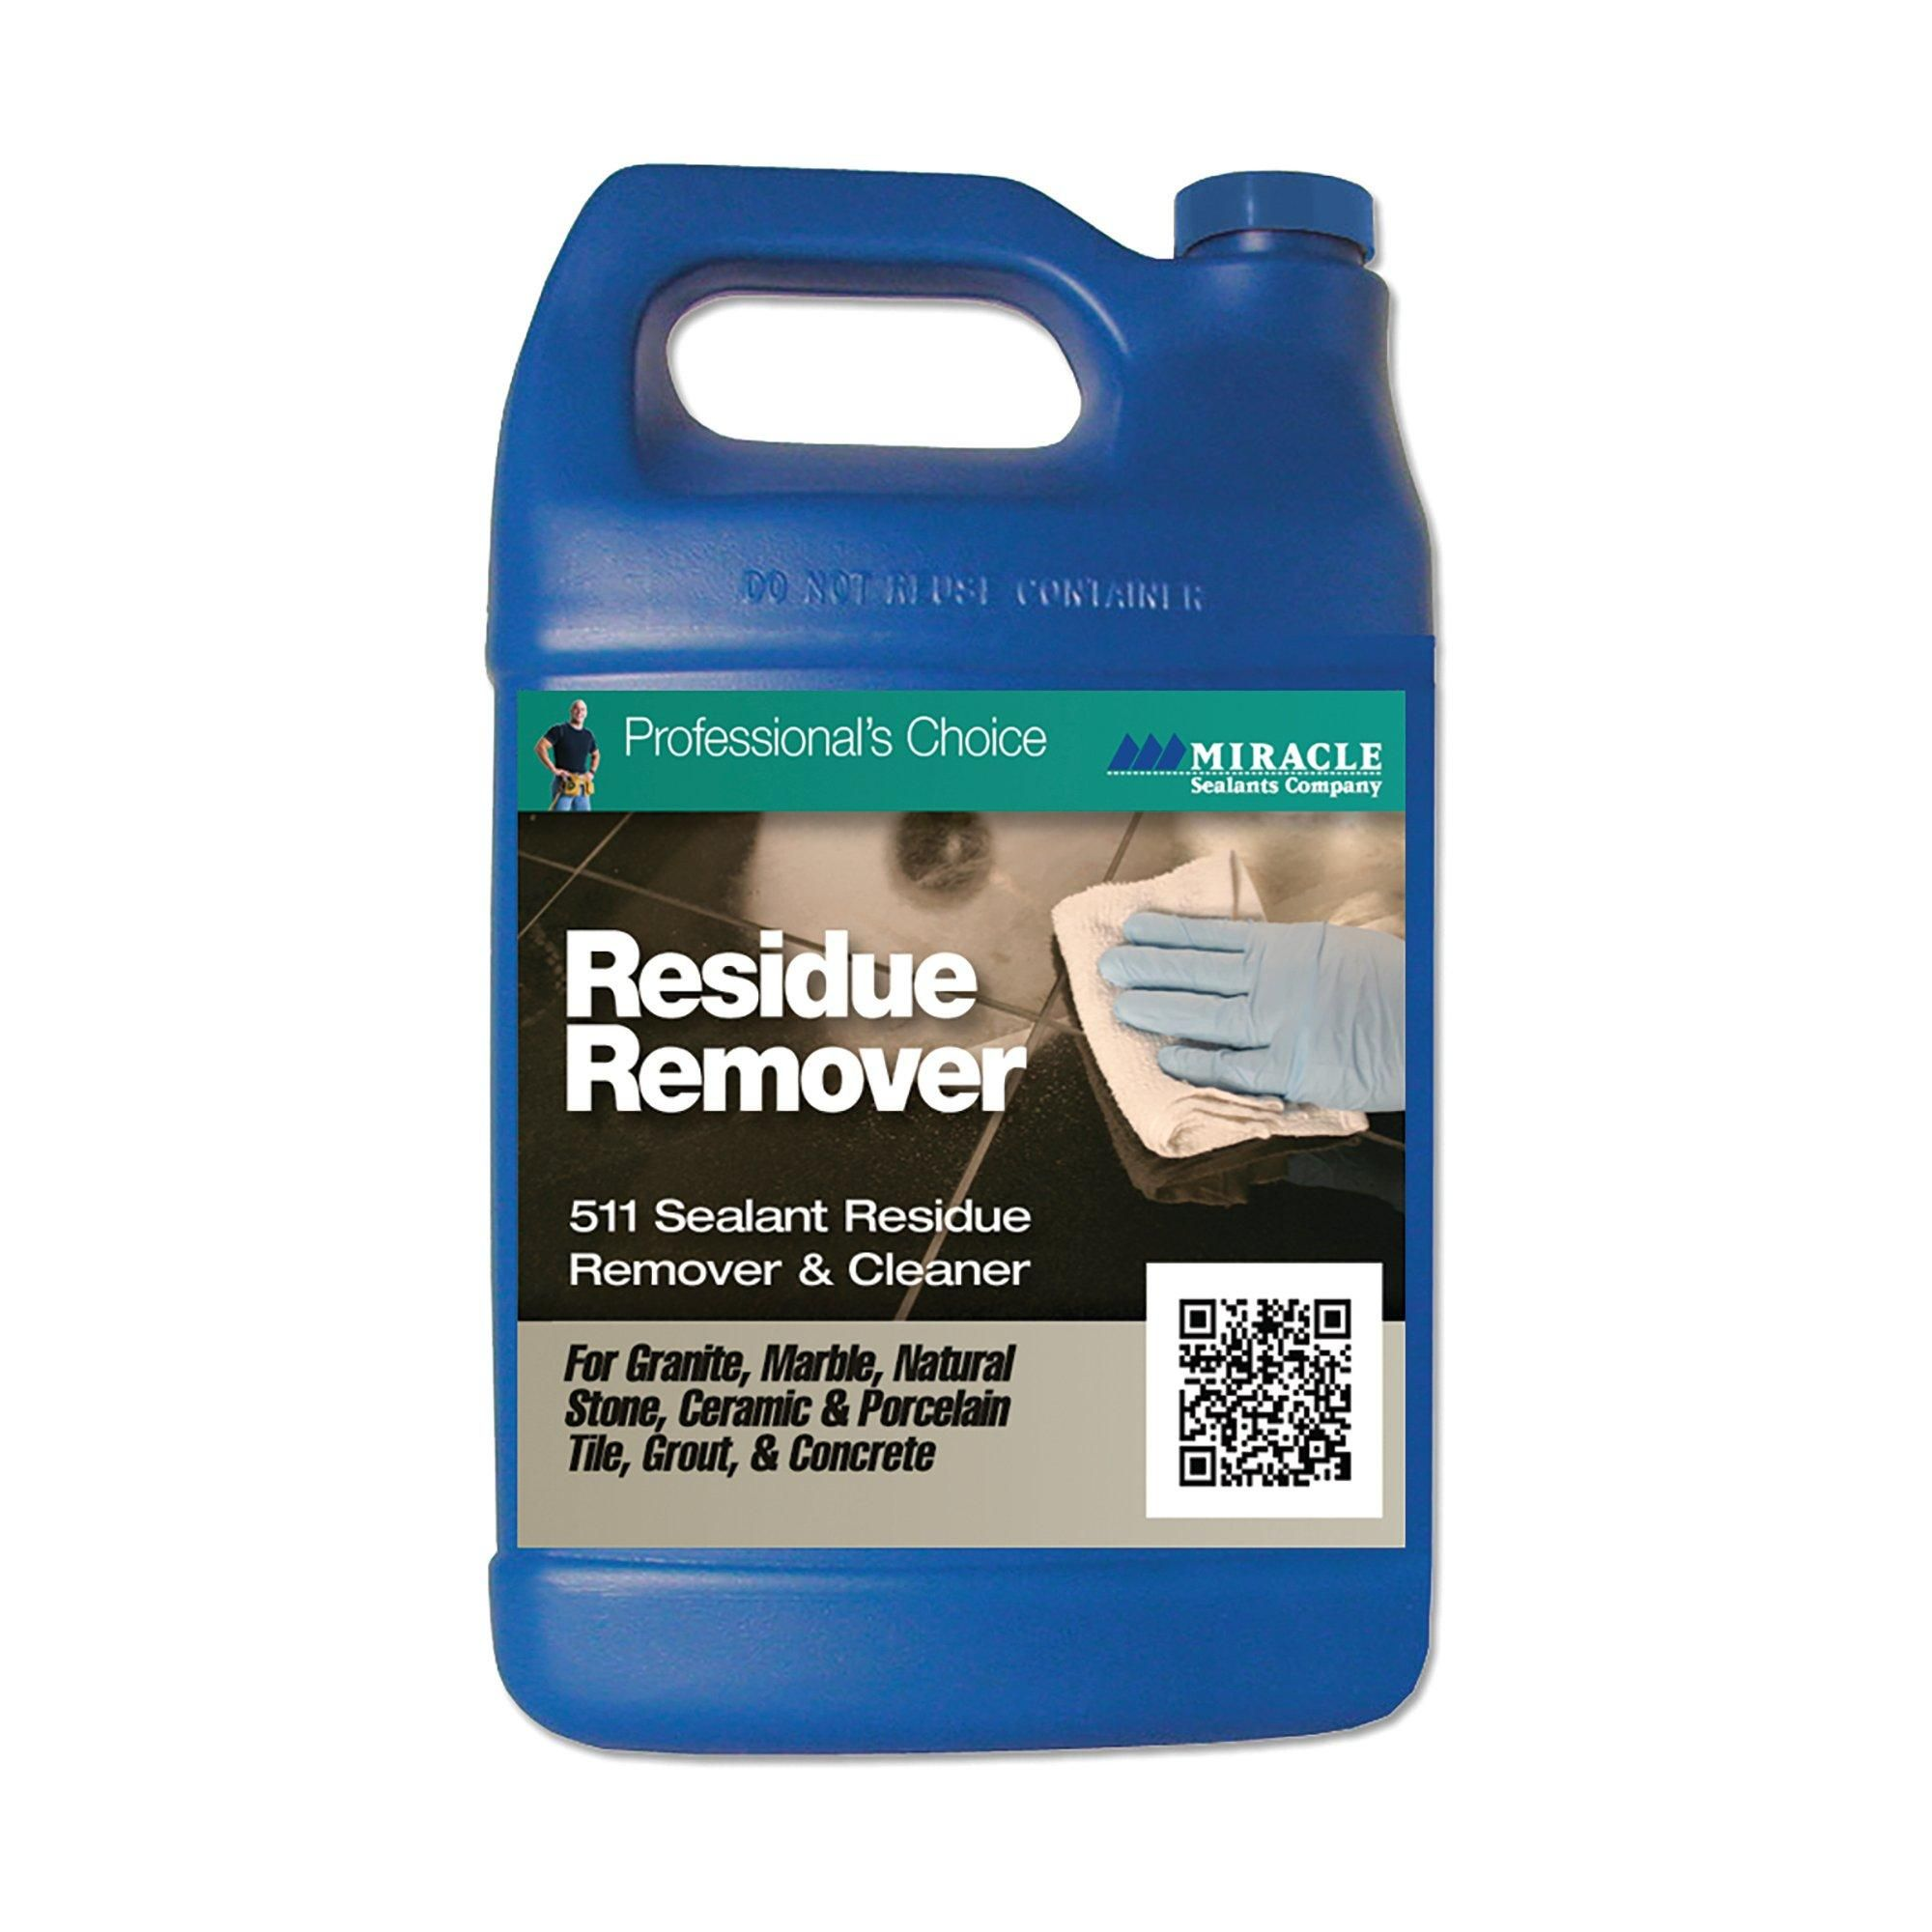 Miracle Residue Remover Floor & Decor in 2020 Cleaning